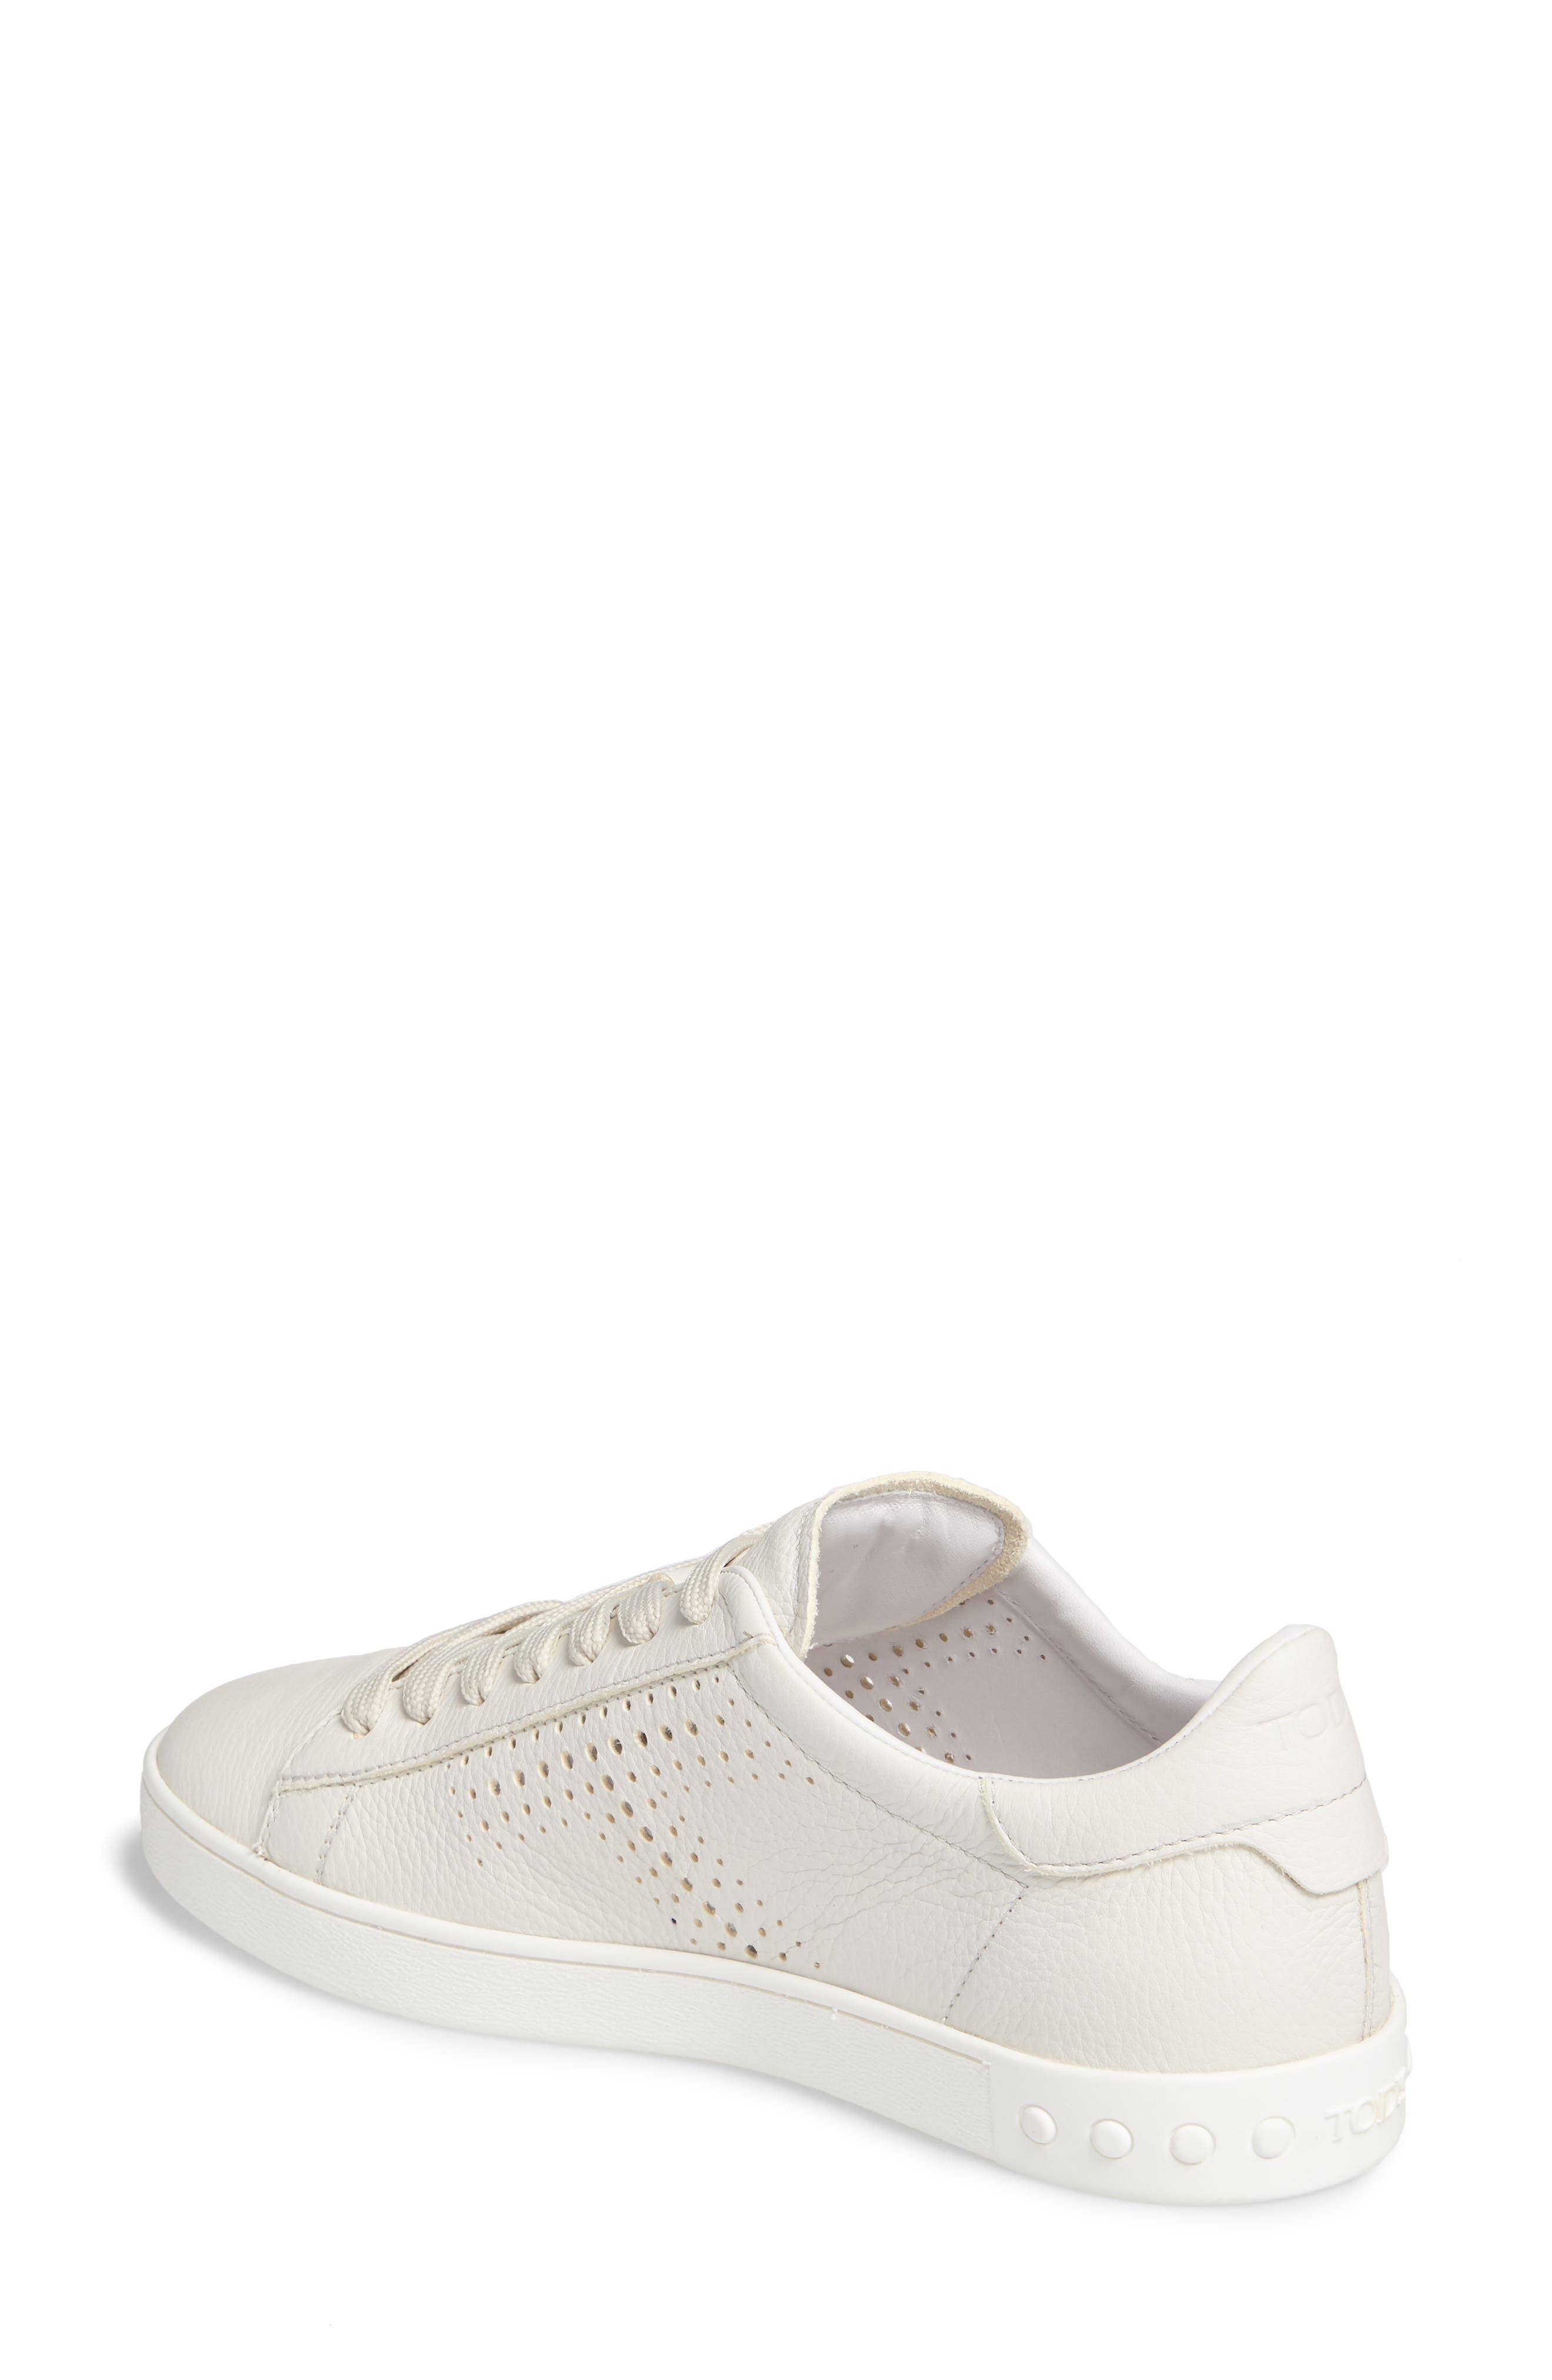 Tods Perforated T Sneaker,                             Alternate thumbnail 2, color,                             100